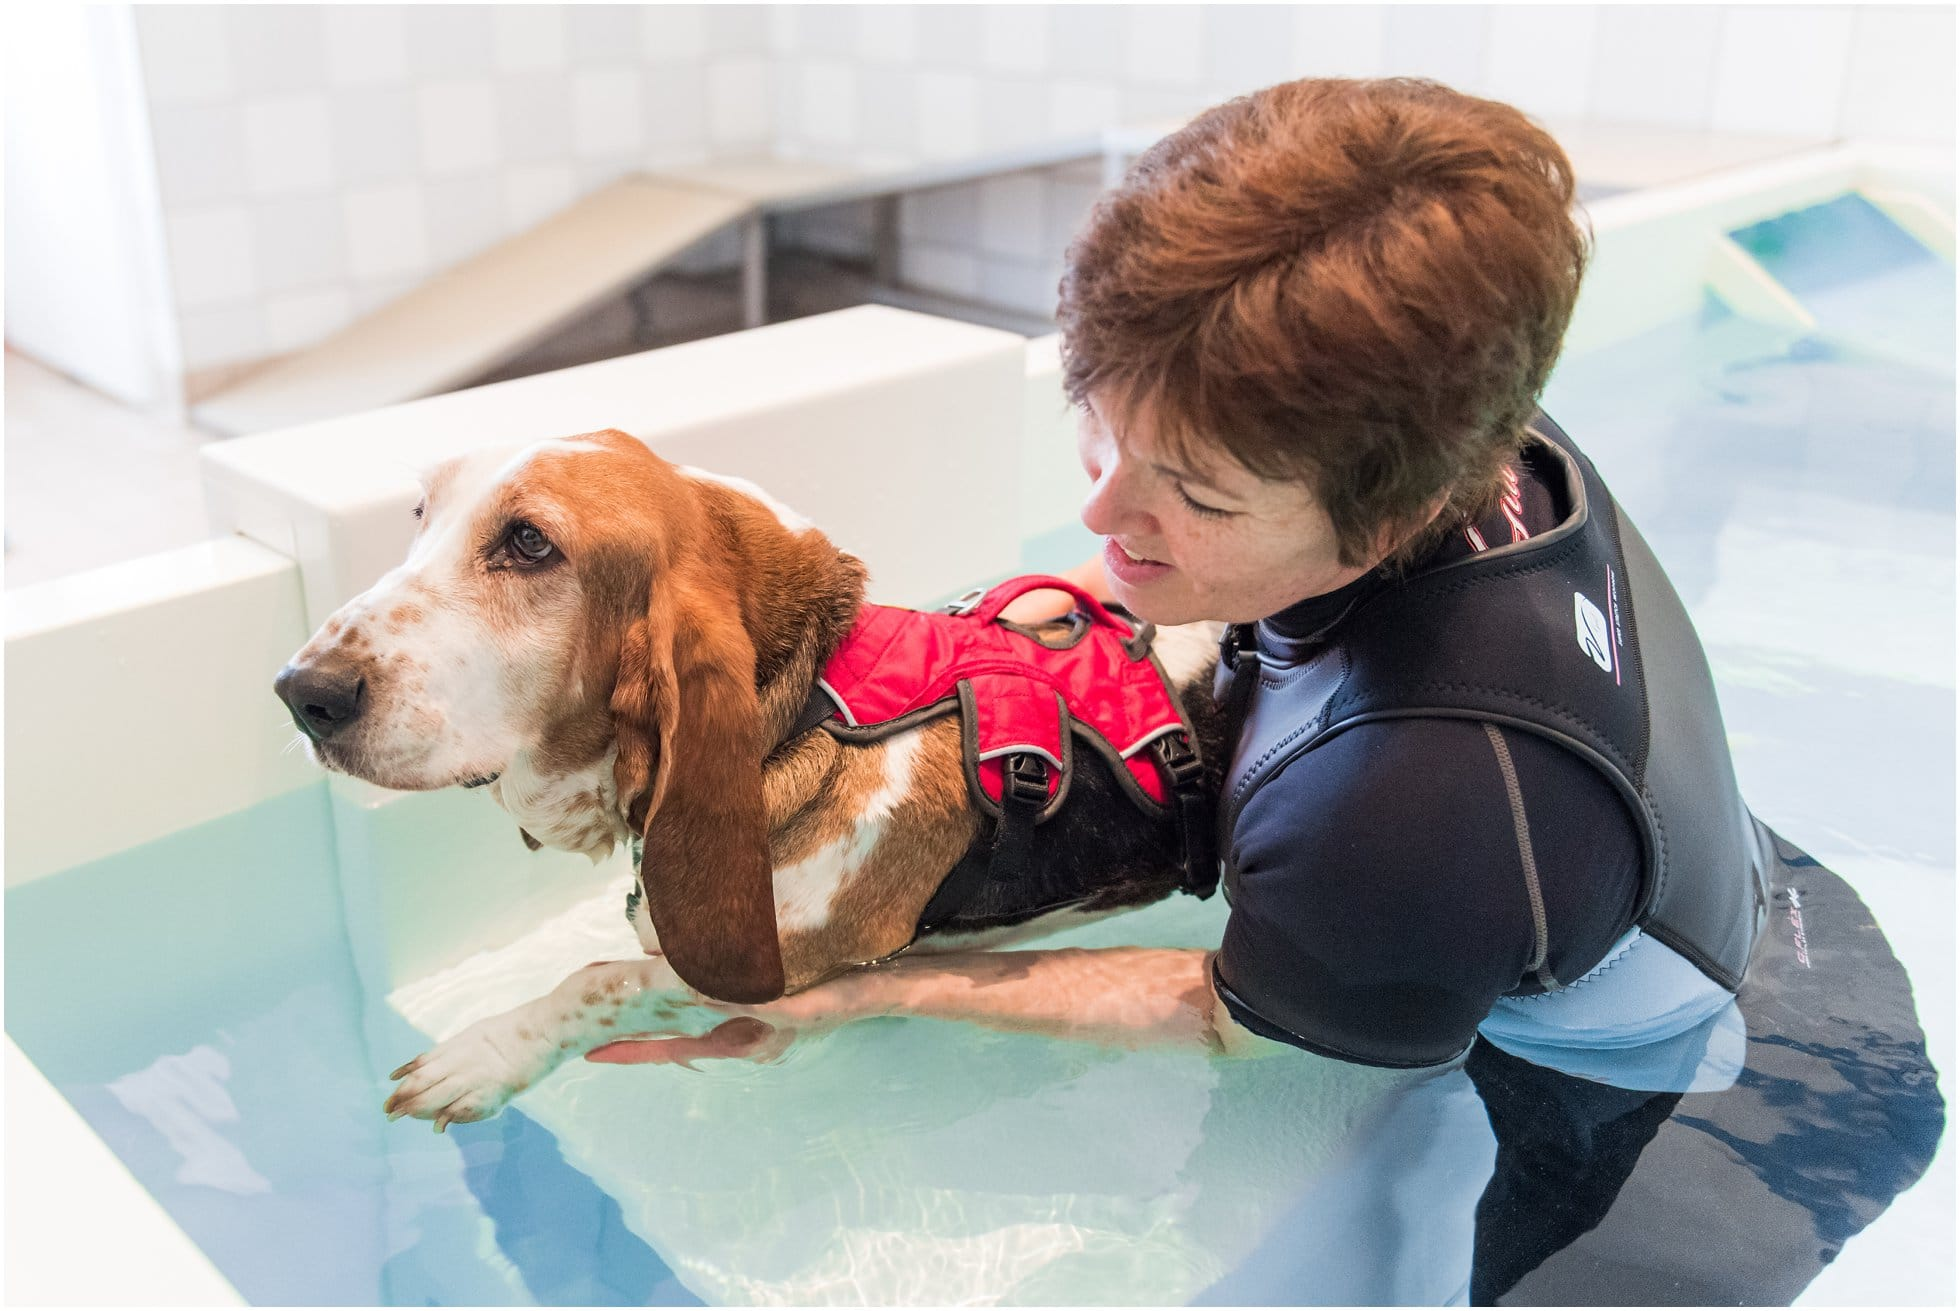 bassett hound having hydrotherapy in the pool